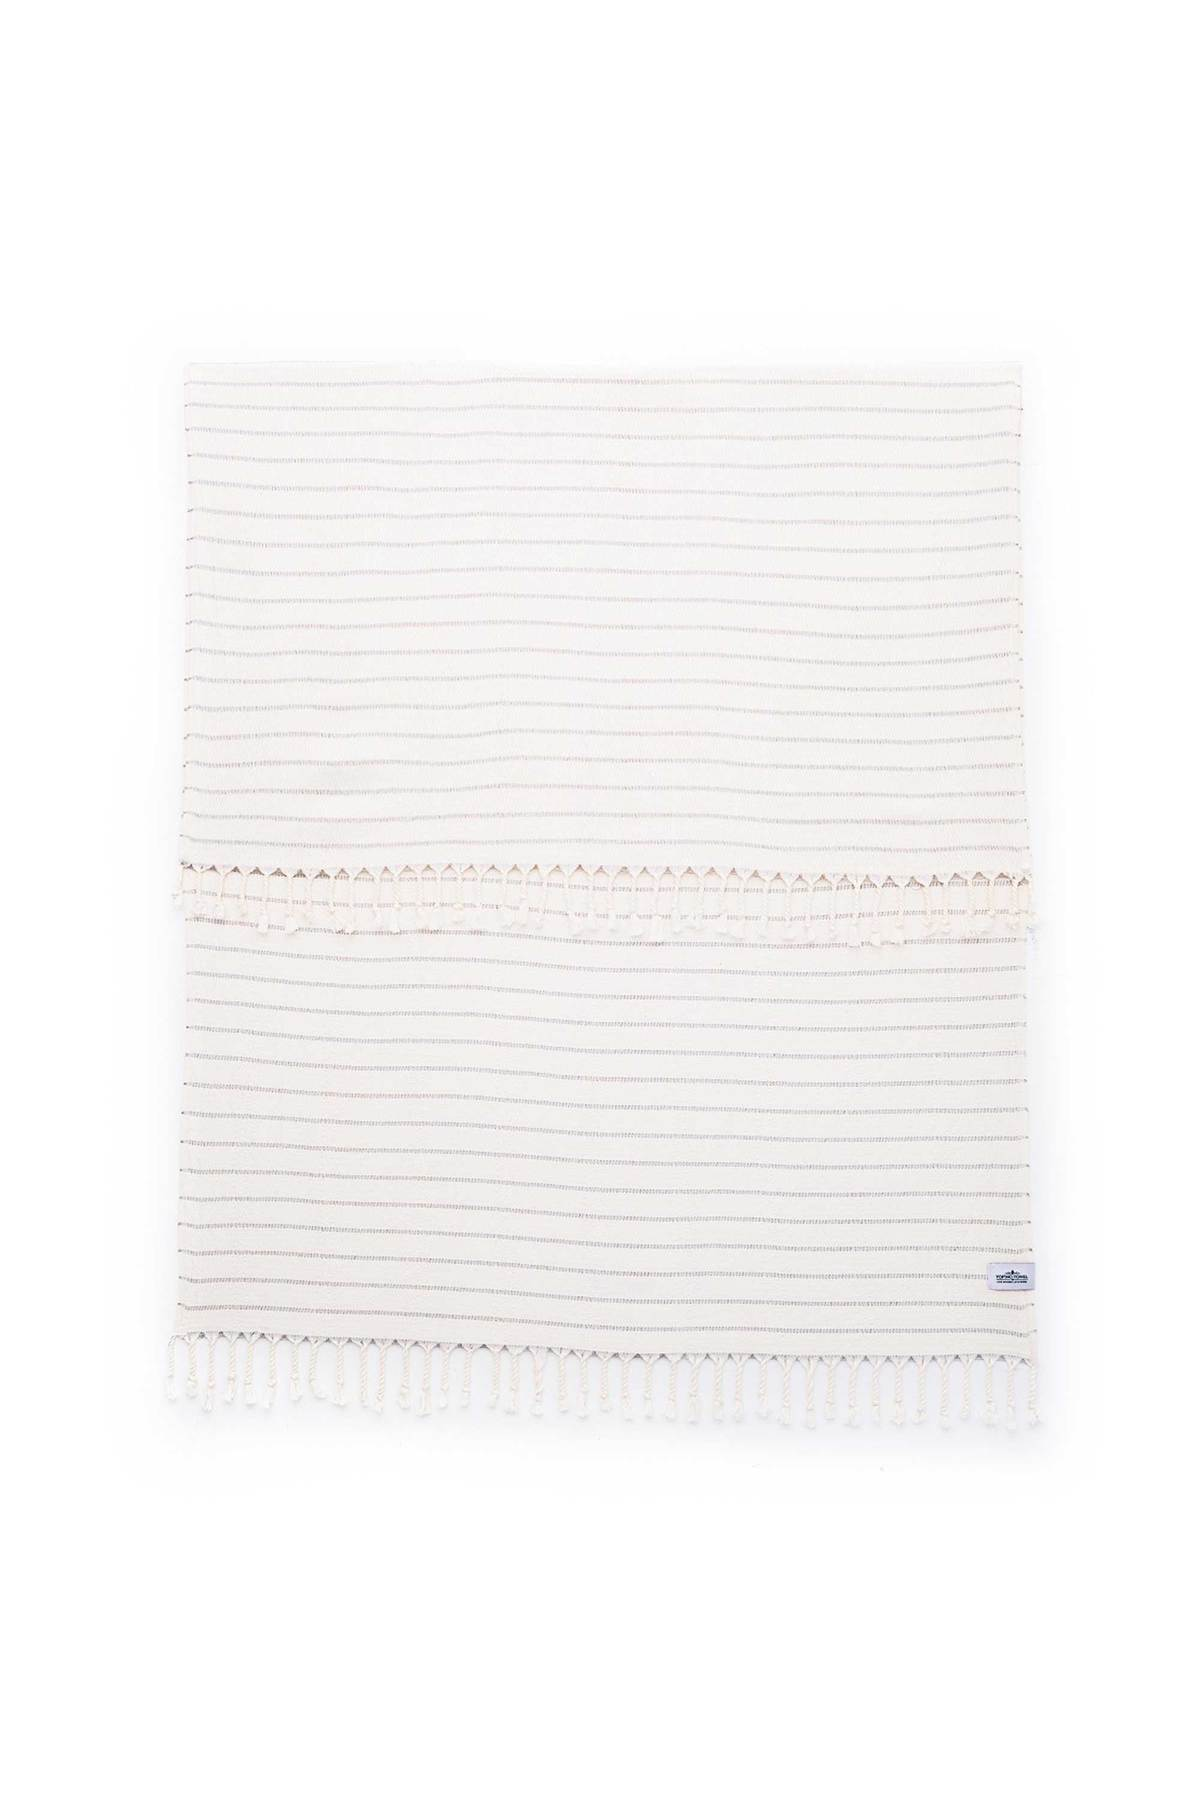 The Willowbrae Bath Towel